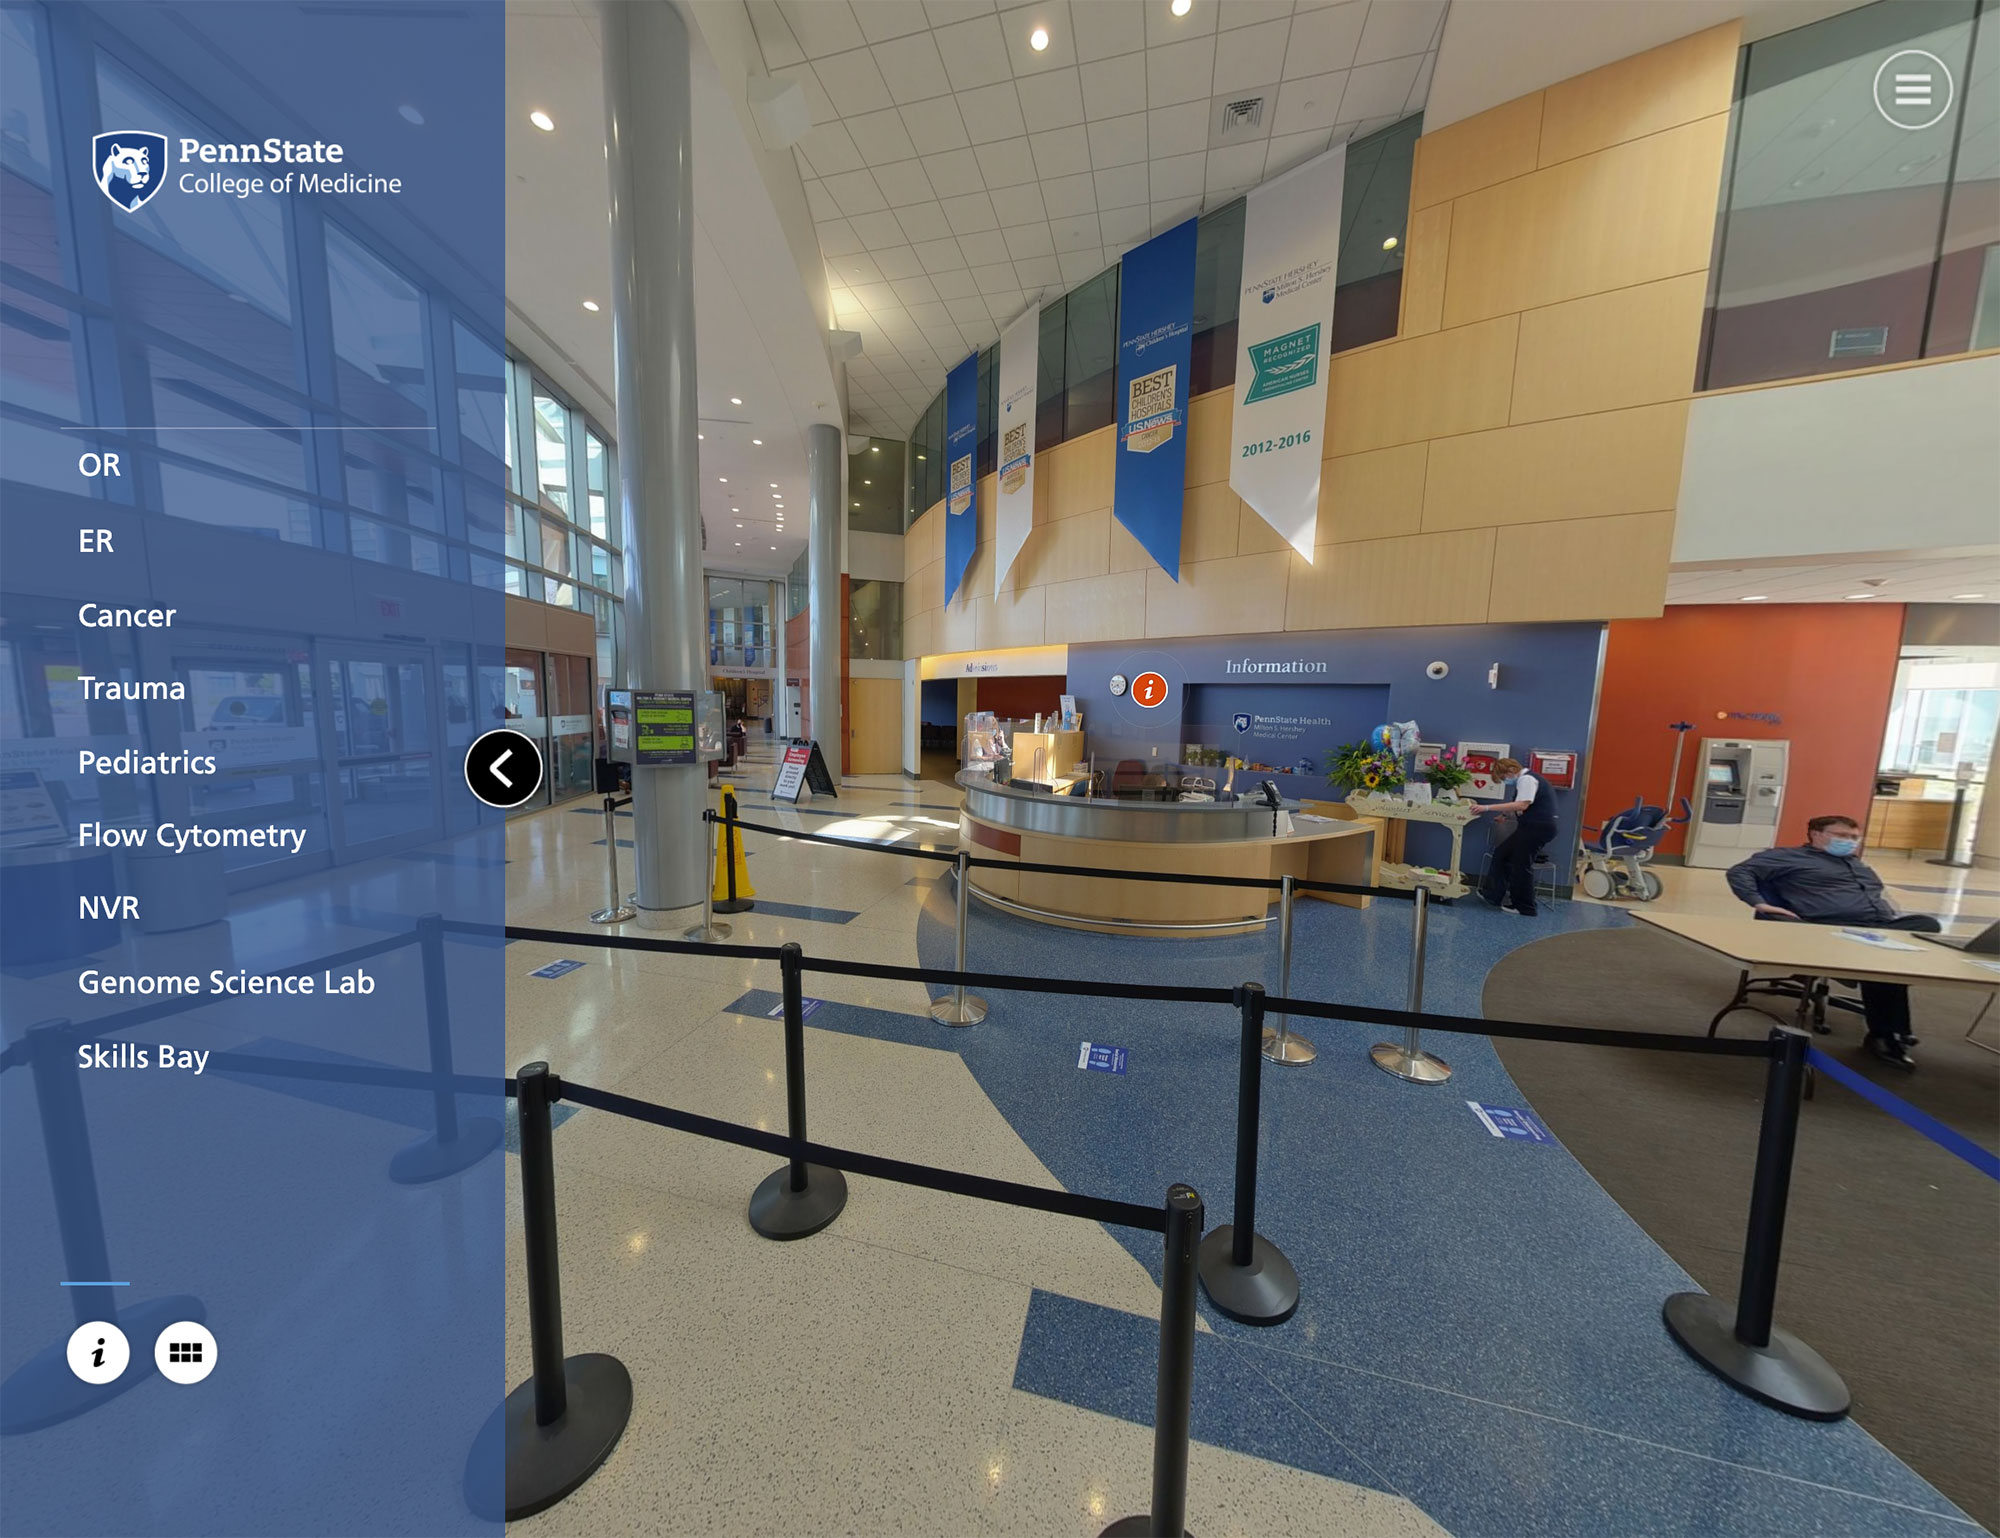 A screenshot shows the 2020 virtual tour of Penn State Health and Penn State College of Medicine.